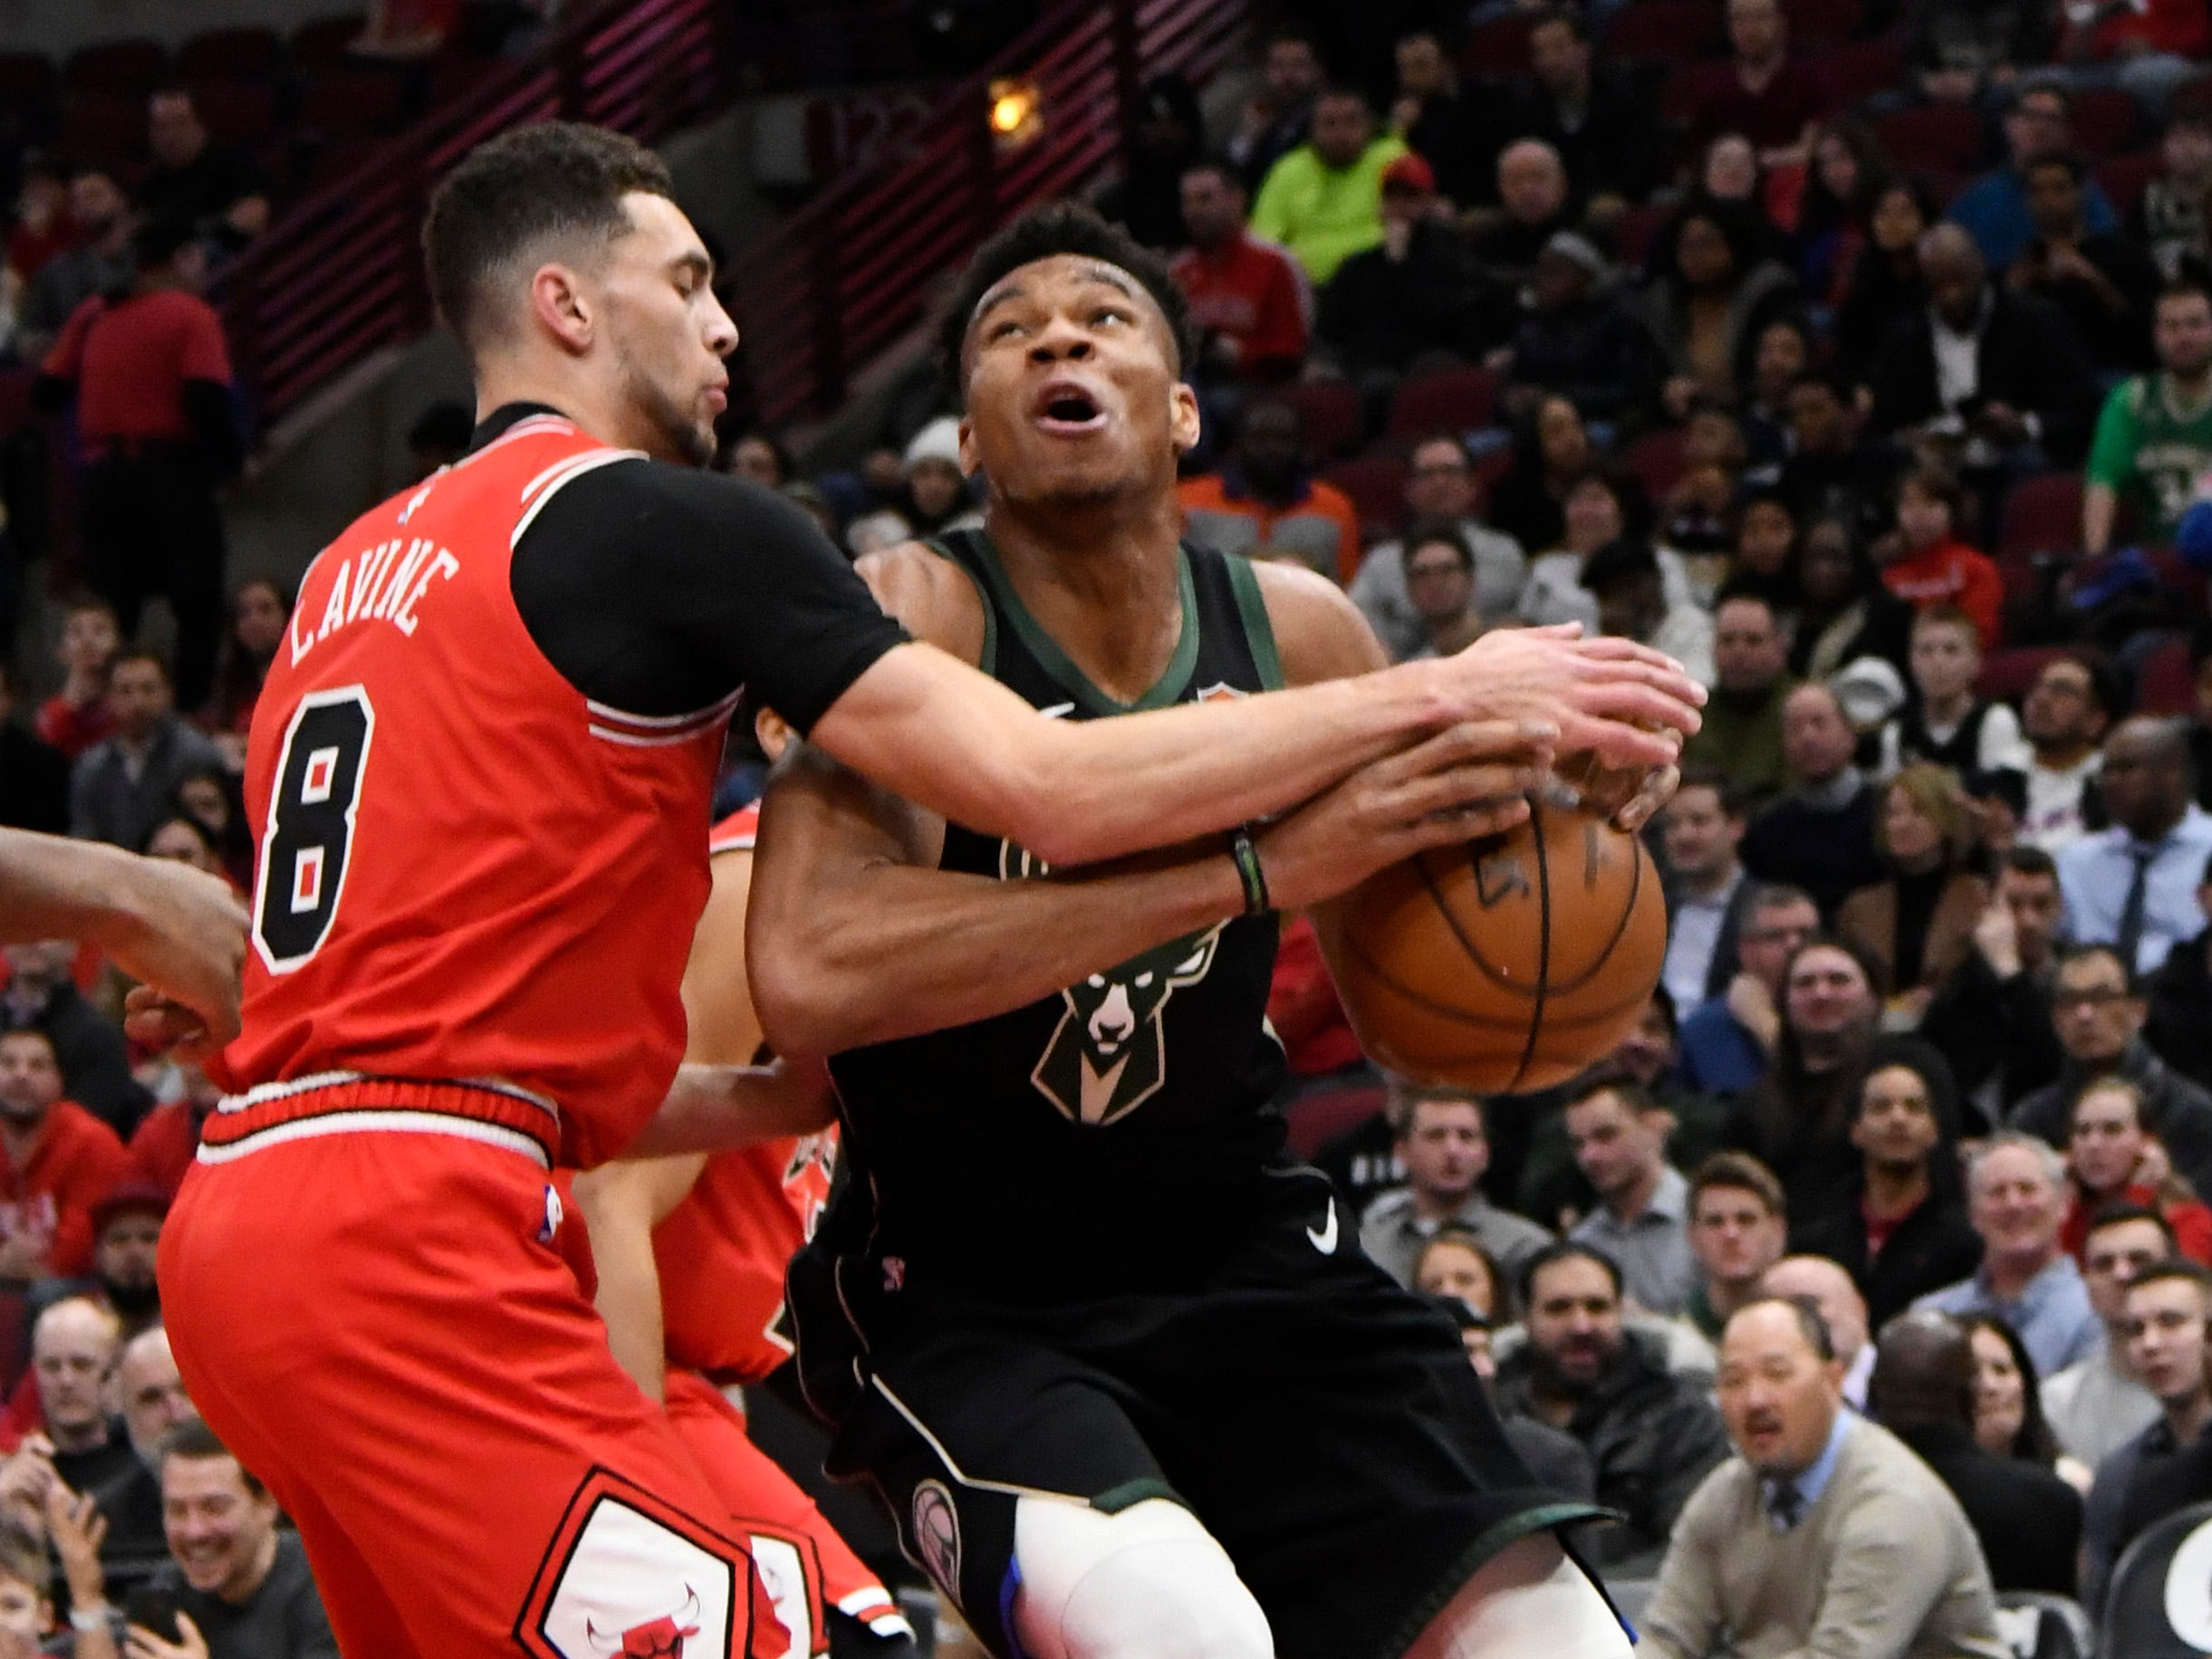 Bucks forward Giannnis Antetokounmpo has the ball knocked out of his hands by Bulls guard Zach LaVine as he works under the basket during the first half Monday.